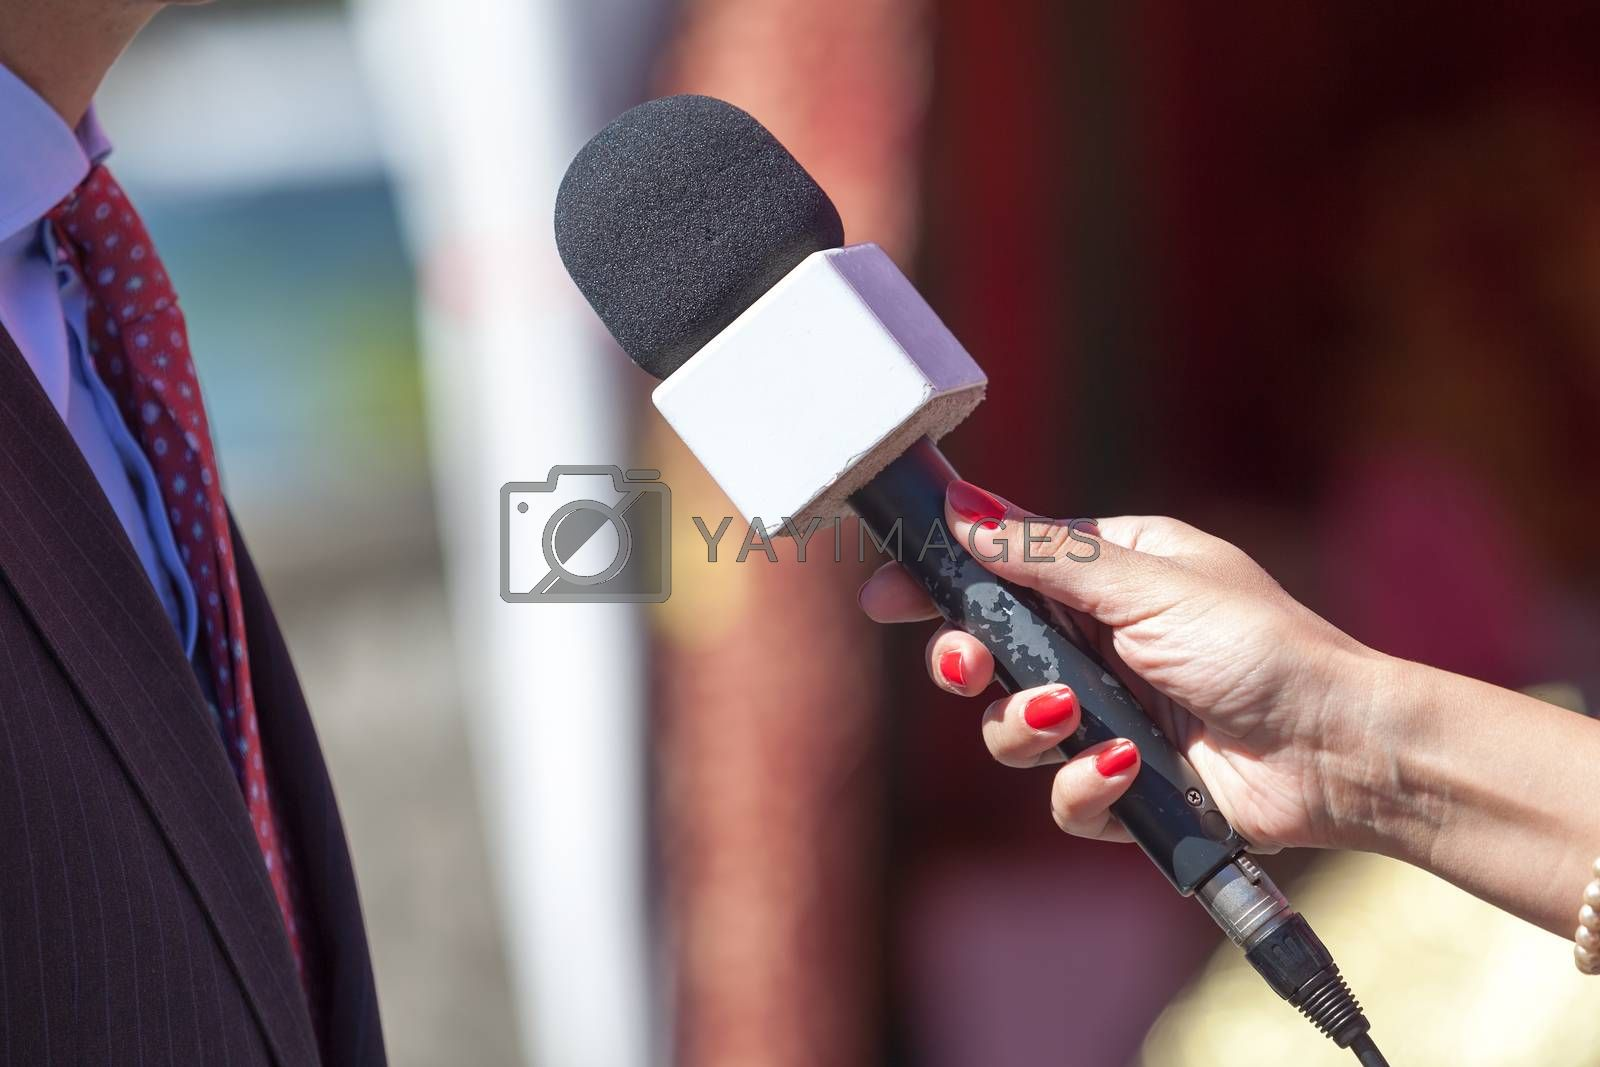 Press interview with business person or politician